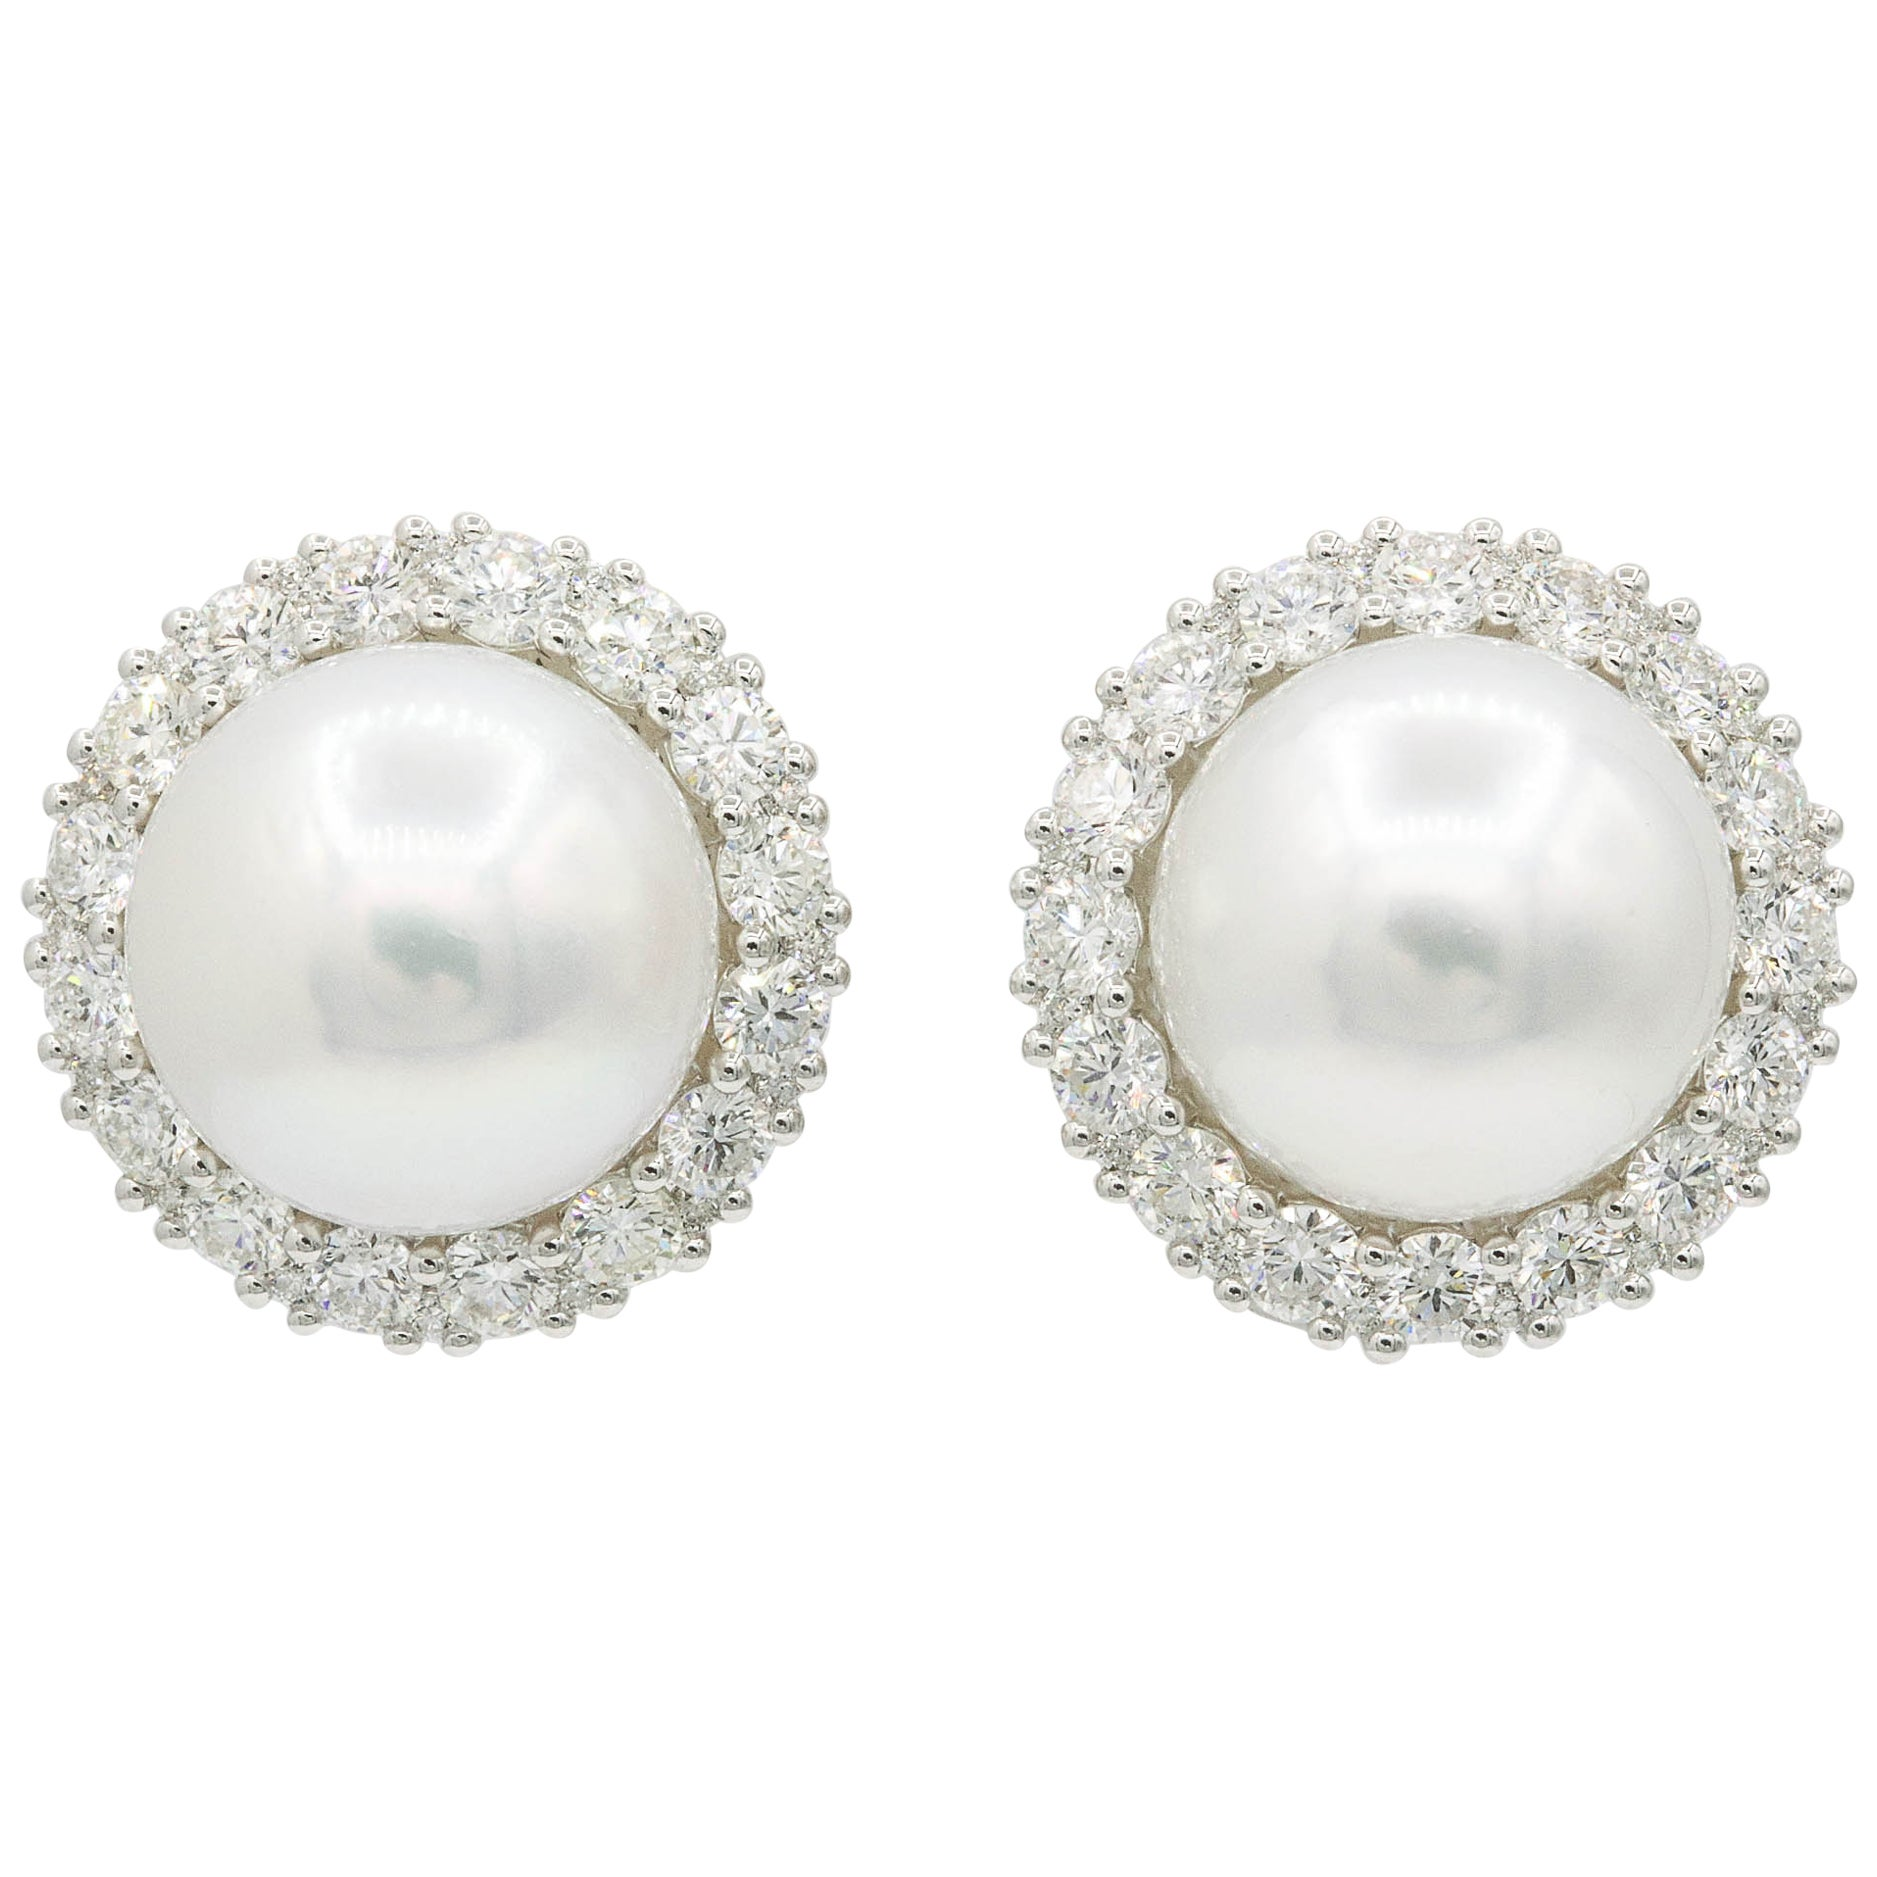 South Sea Pearl Diamond Halo Stud Earrings 2.75 Carats 18K